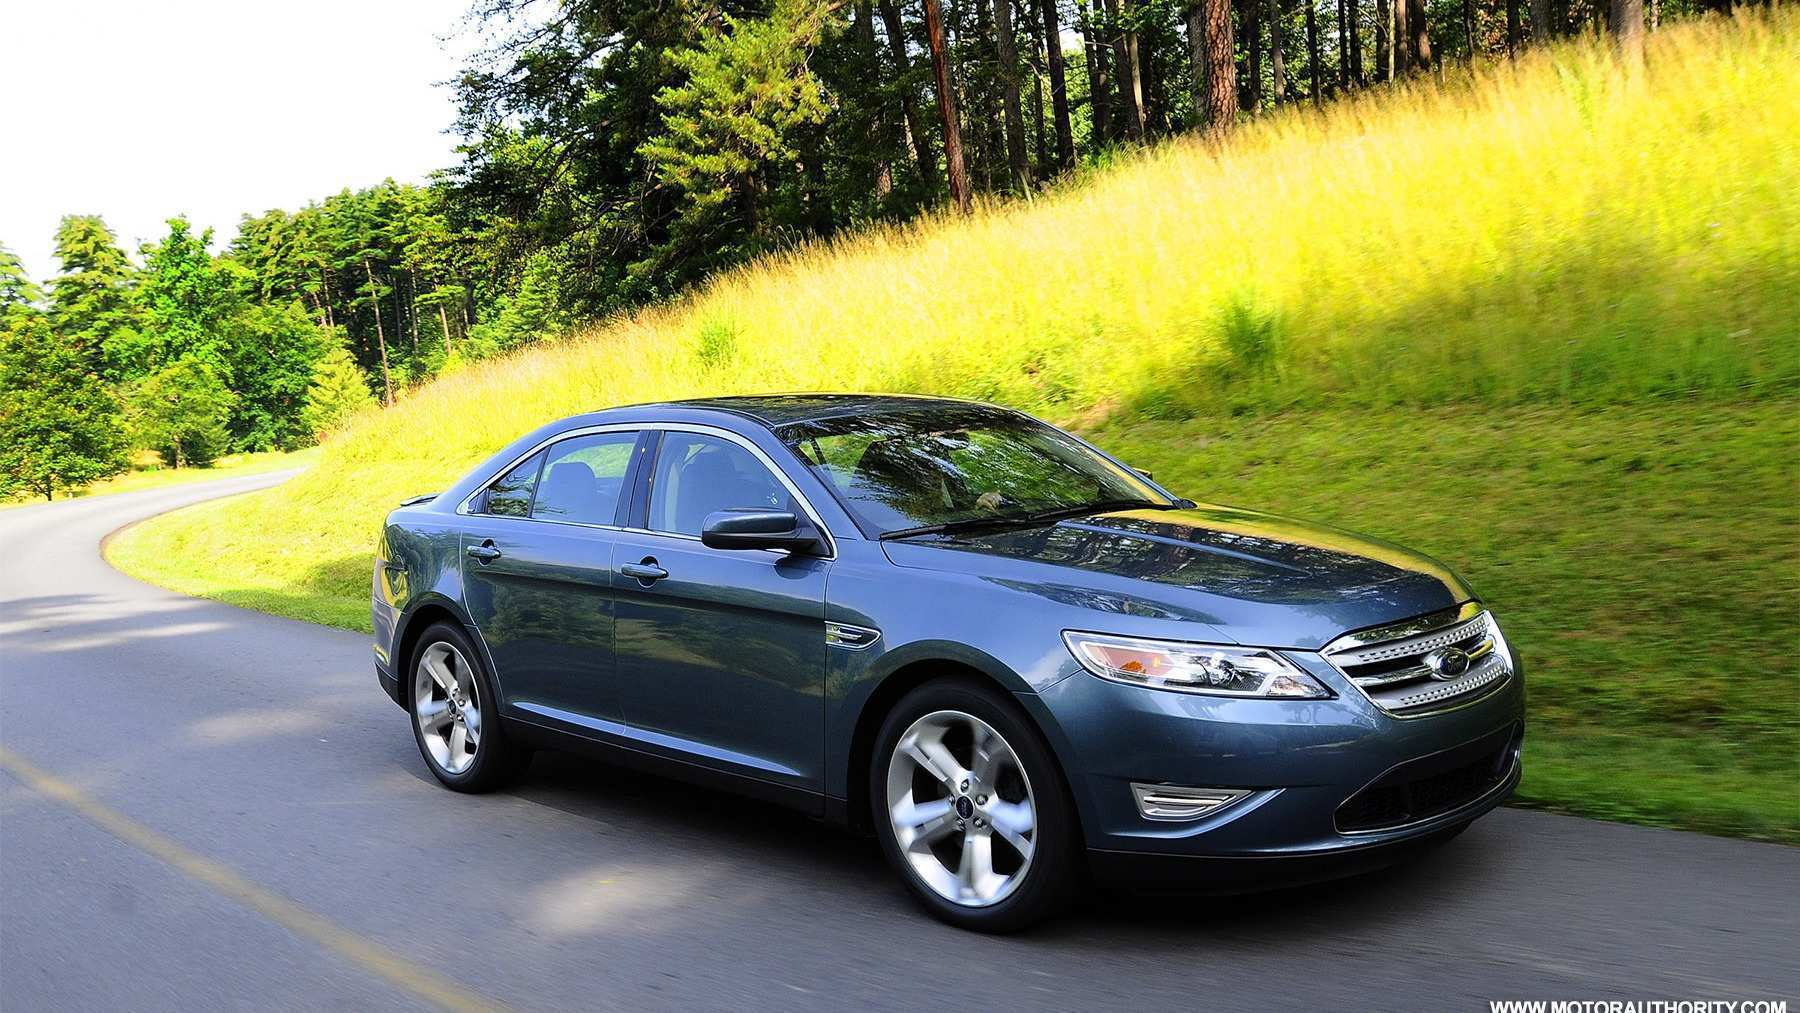 85 A 2020 Ford Taurus Sho Price And Review